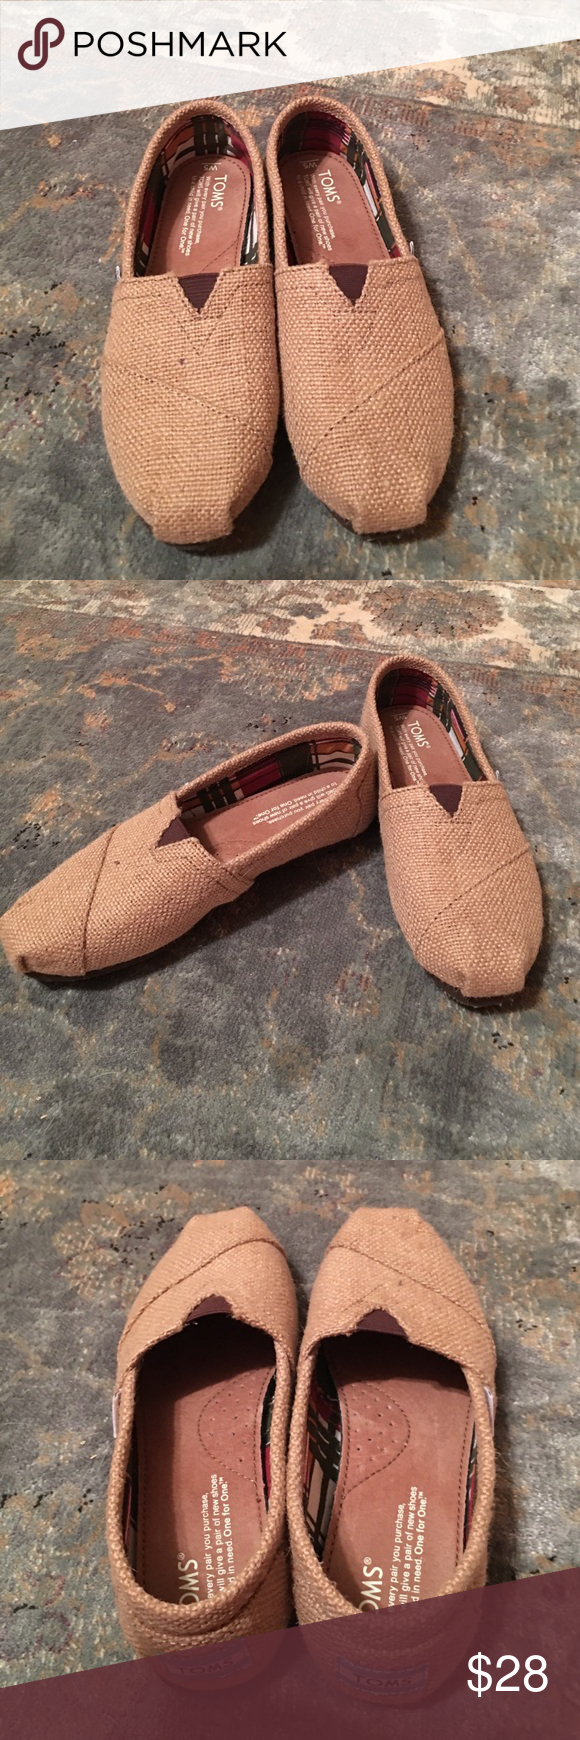 Size 5 Toms worn once. Burlap Toms practically brand new. Size 5 TOMS Shoes Sneakers